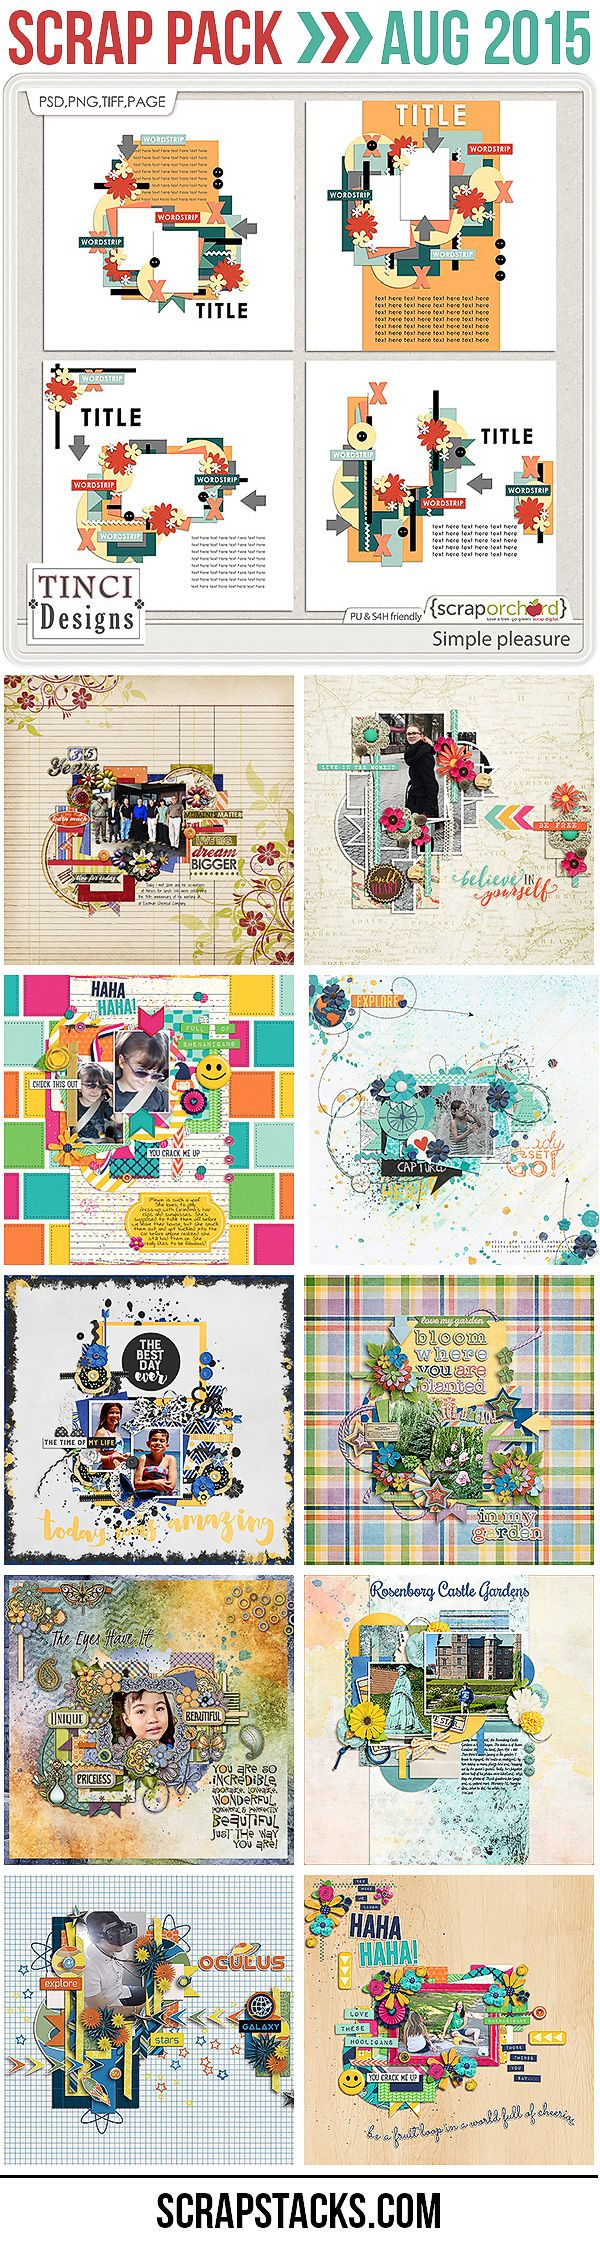 Scrap Pack August 2015: Templates by Tinci Designs